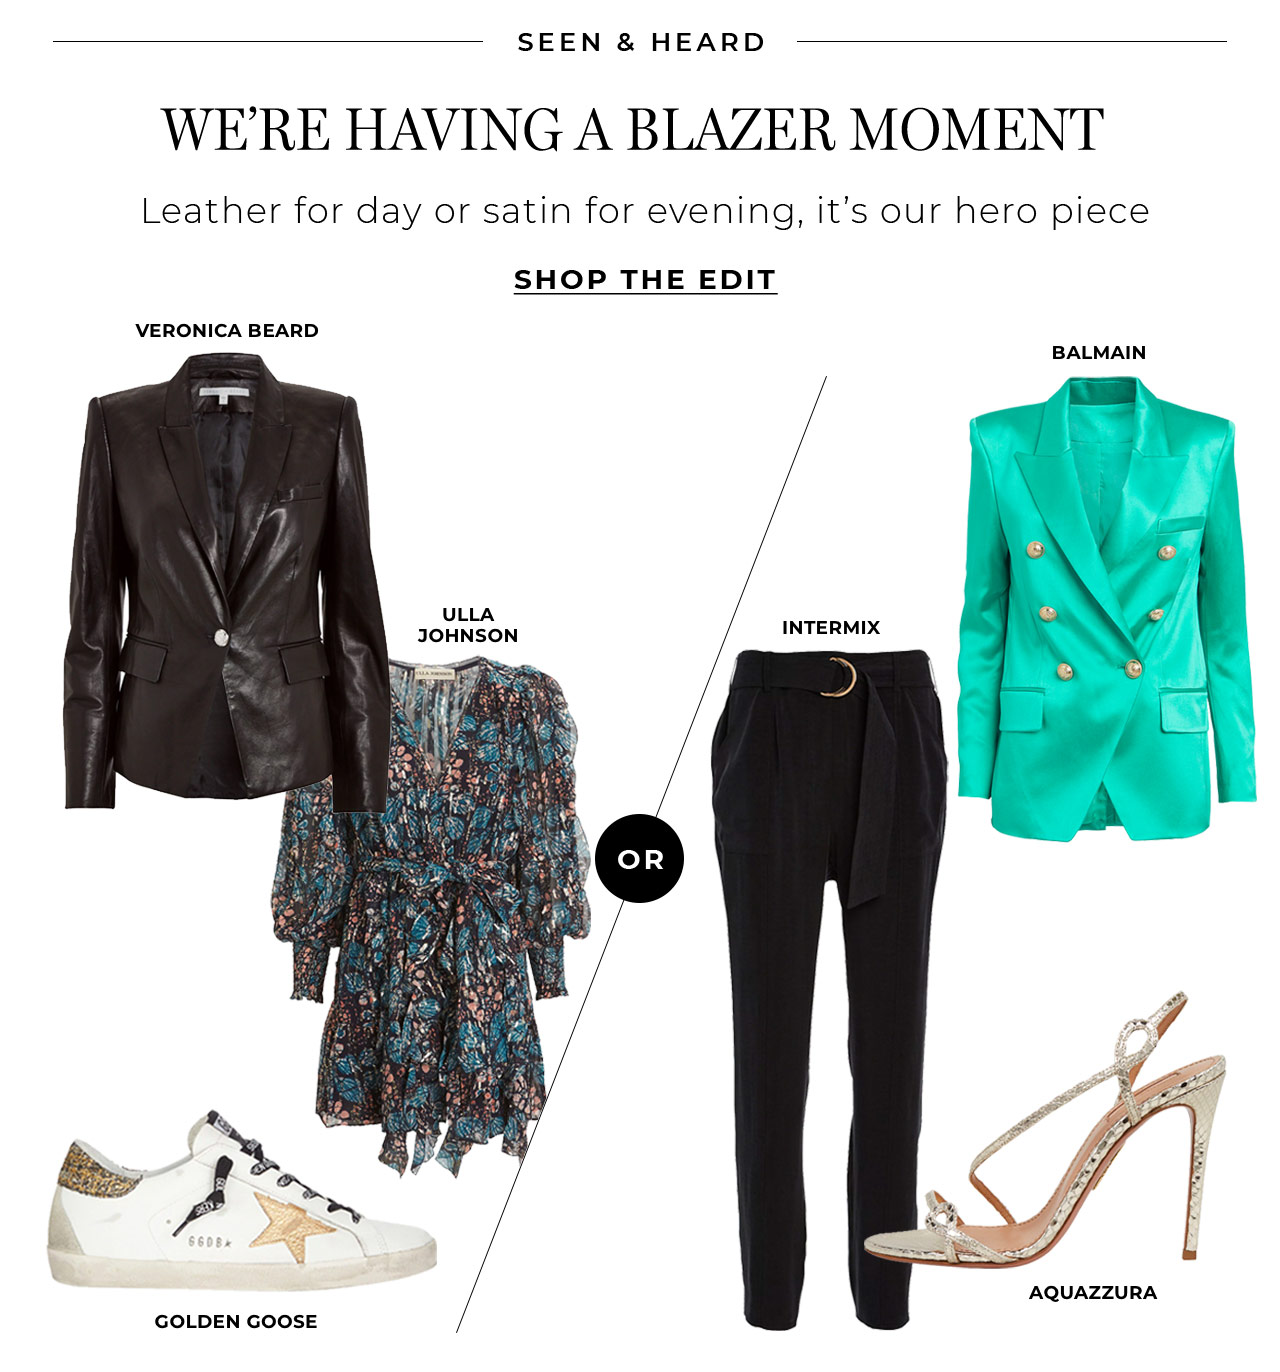 We're having a blazer moment. Leather for day or satin for evening, it's our hero piece